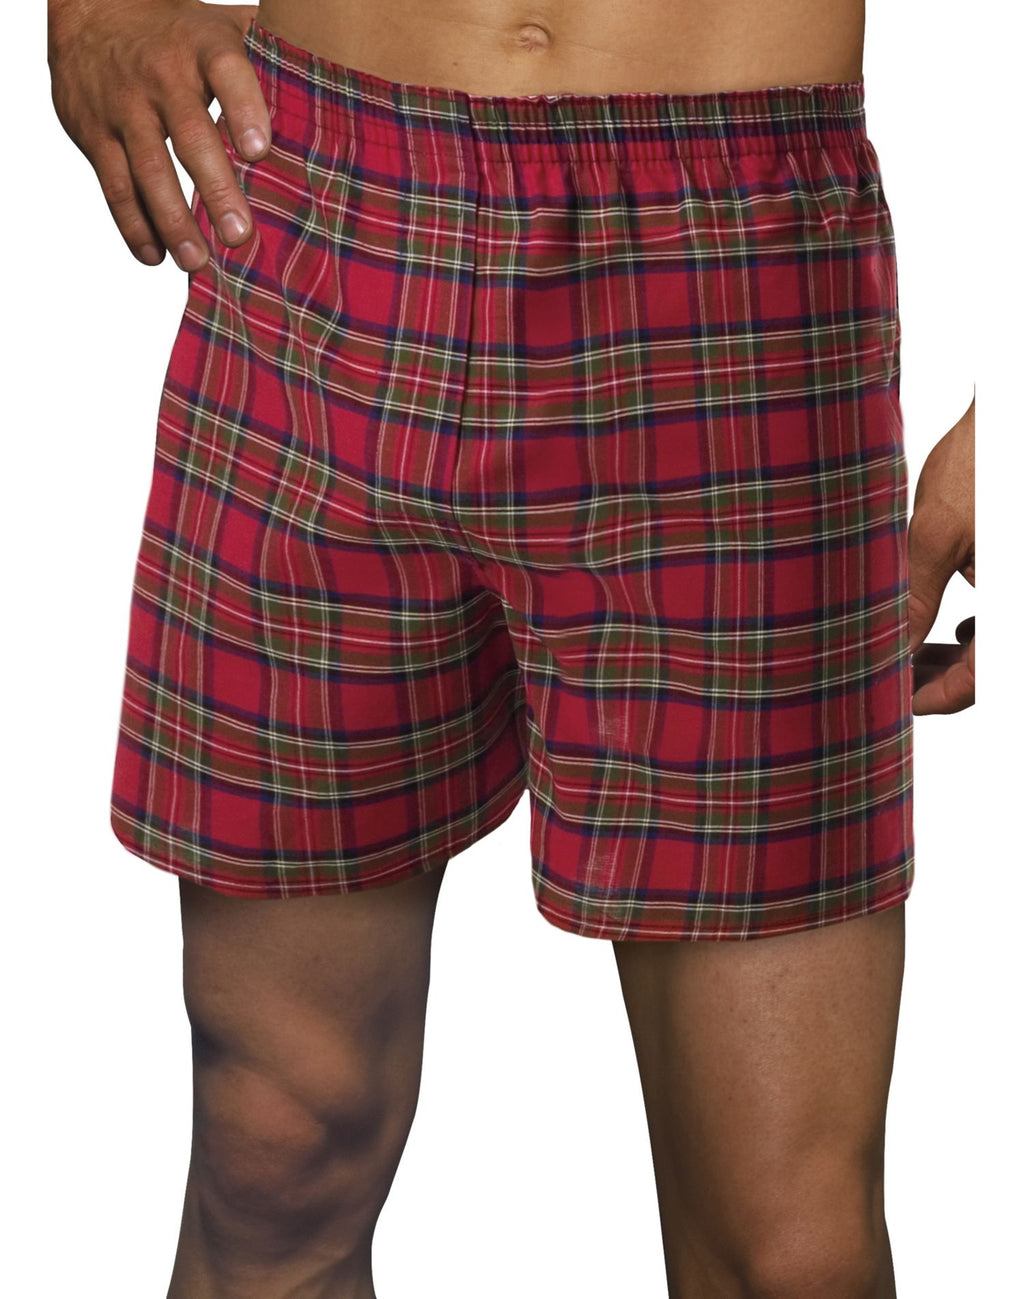 Hanes Classics BIG Men's Tartan Boxers with Comfort Flex Waistband 2-Pack